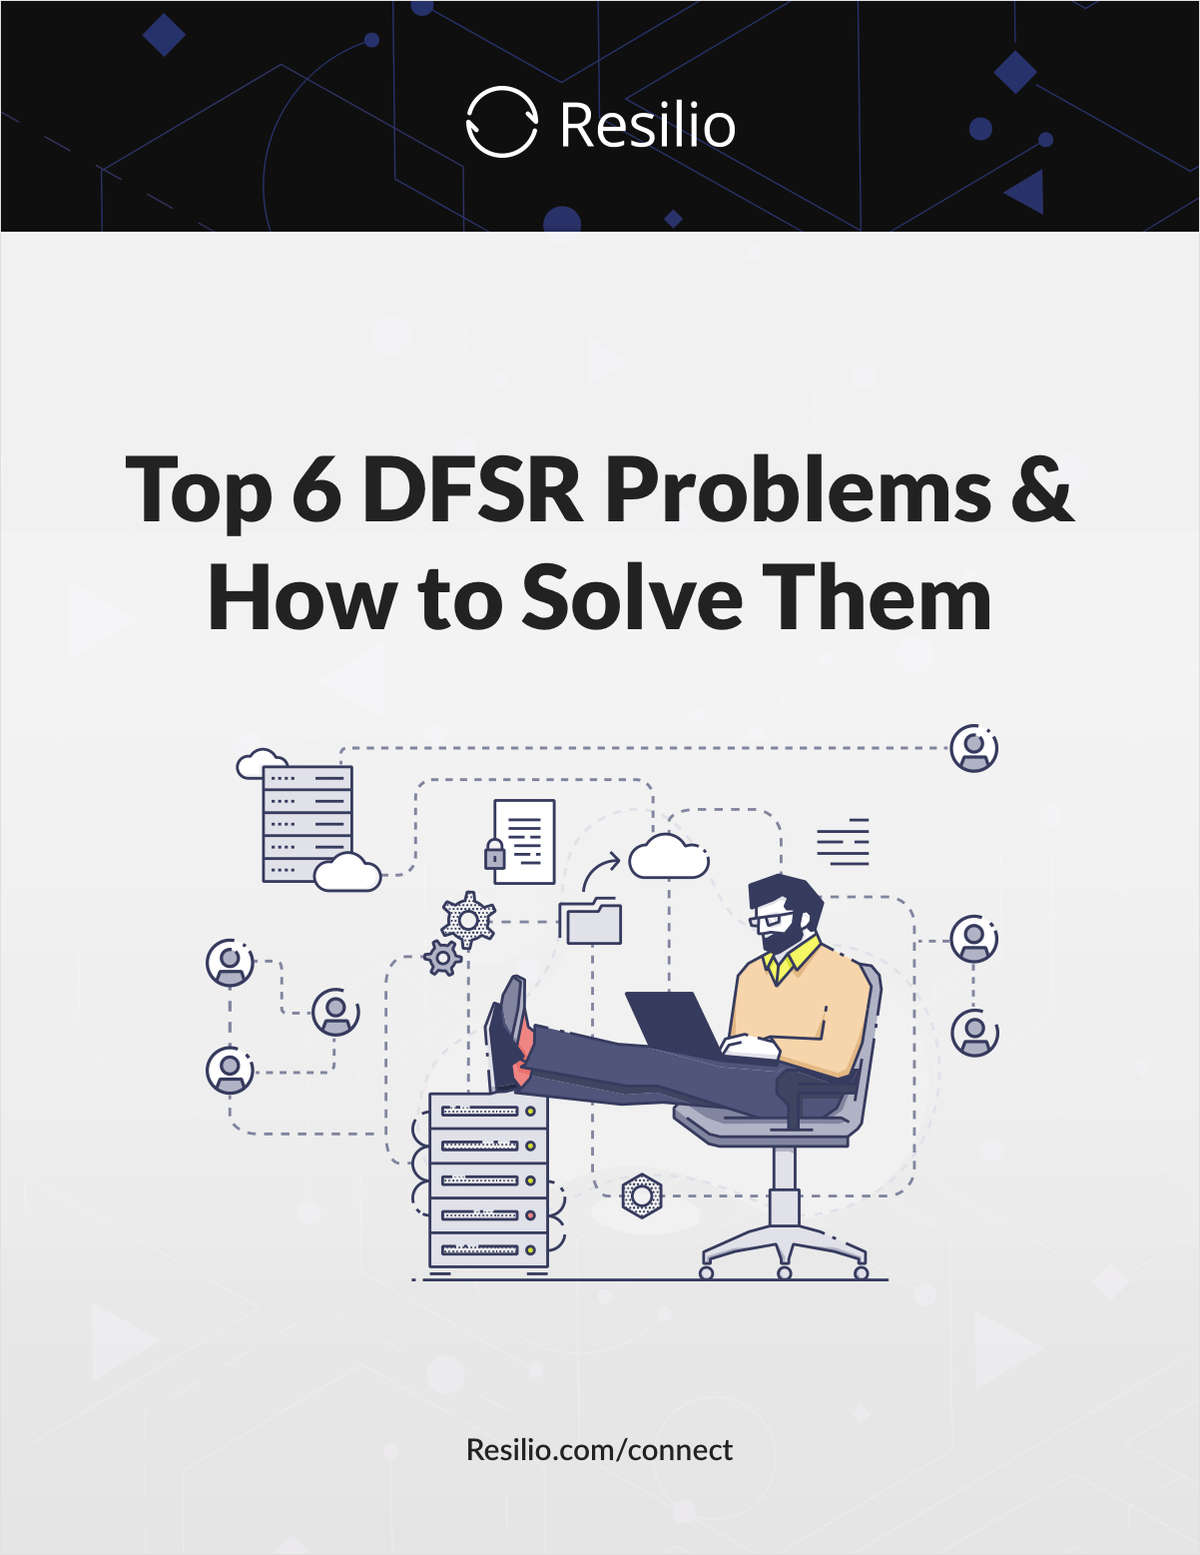 Top 6 DFSR Problems and How to Solve Them